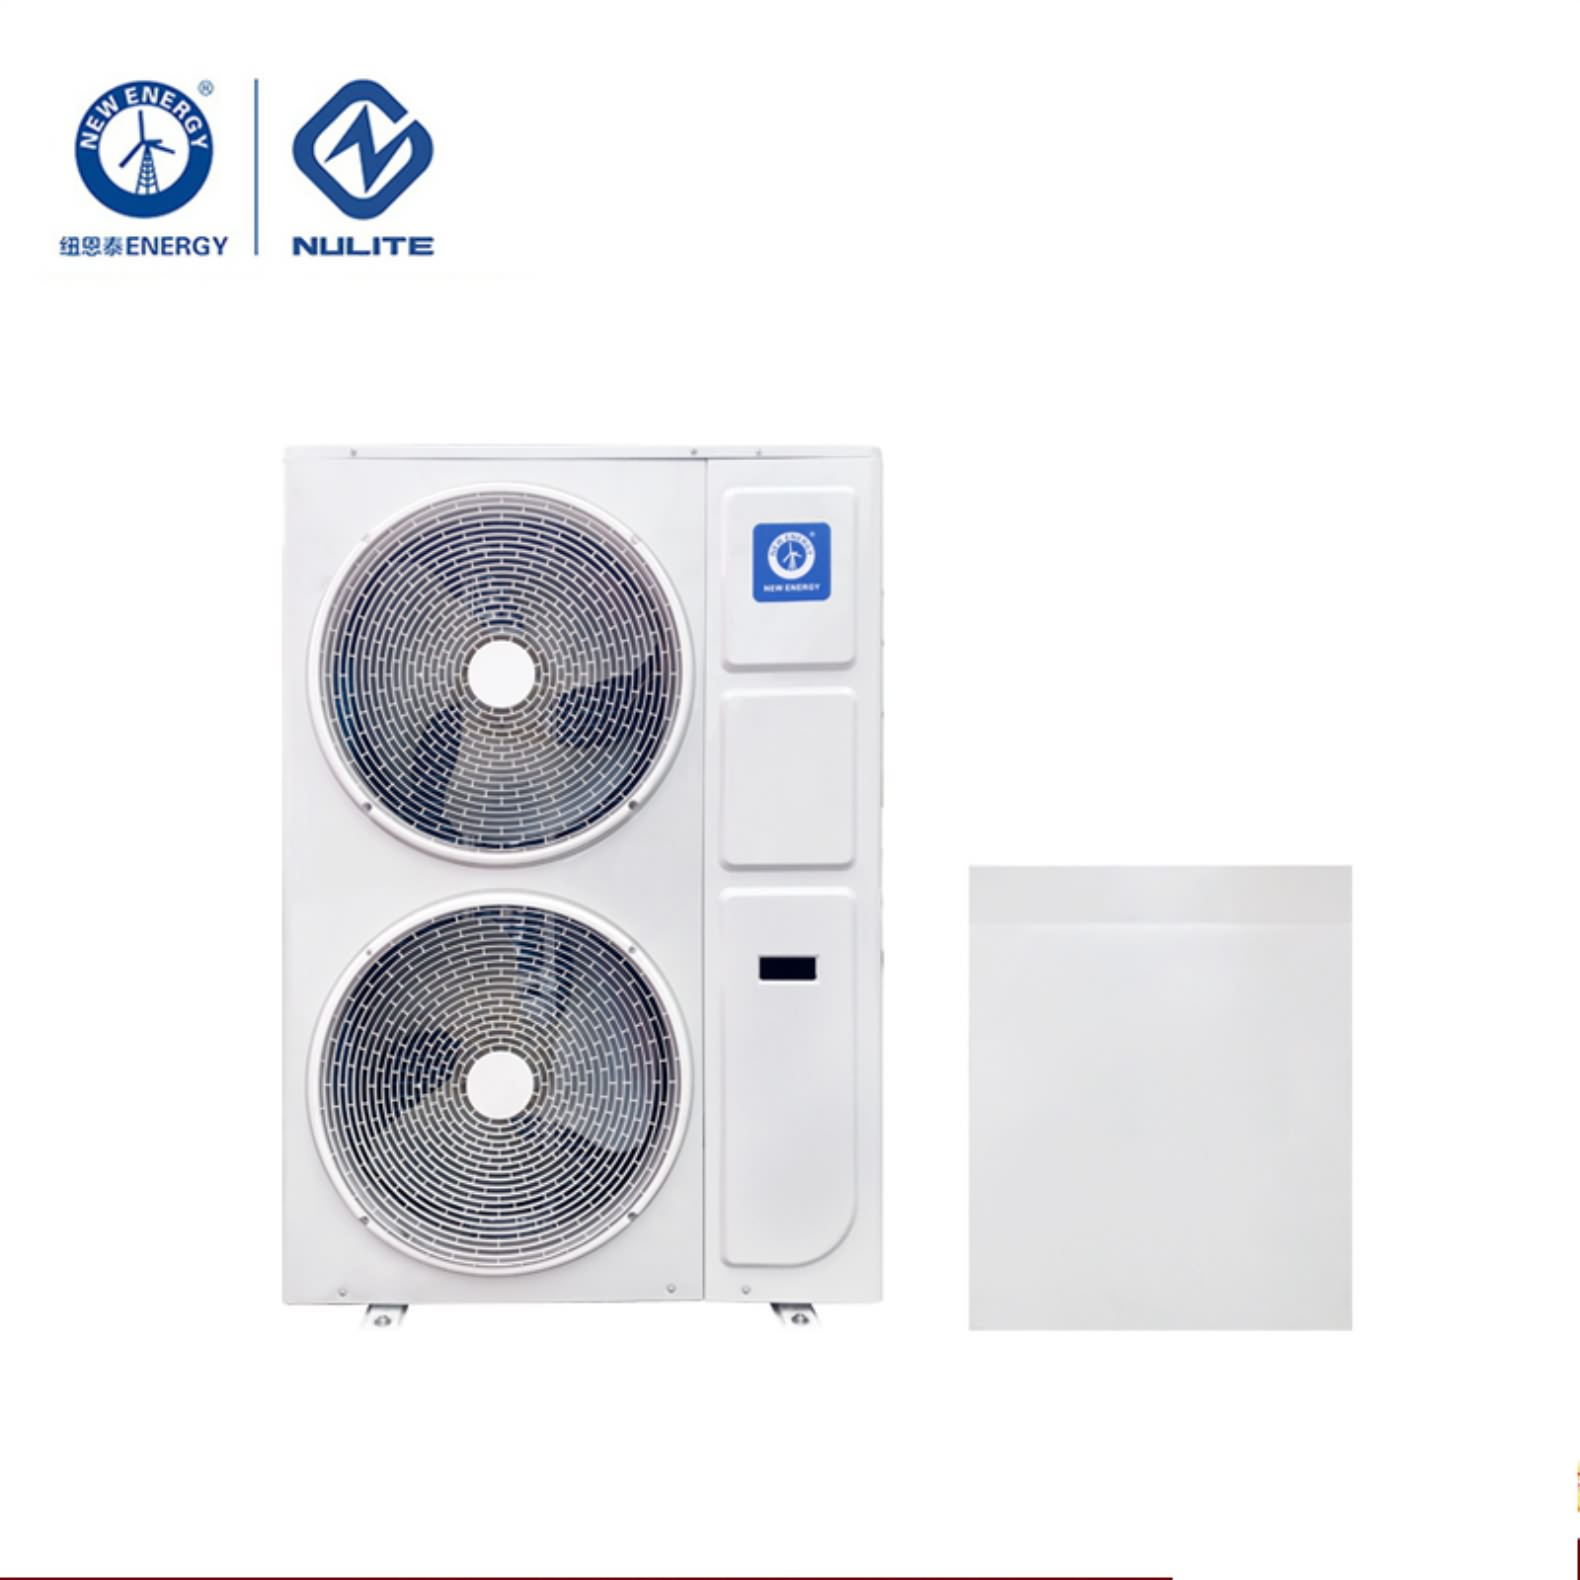 China Manufacturer for Lampopumppu -